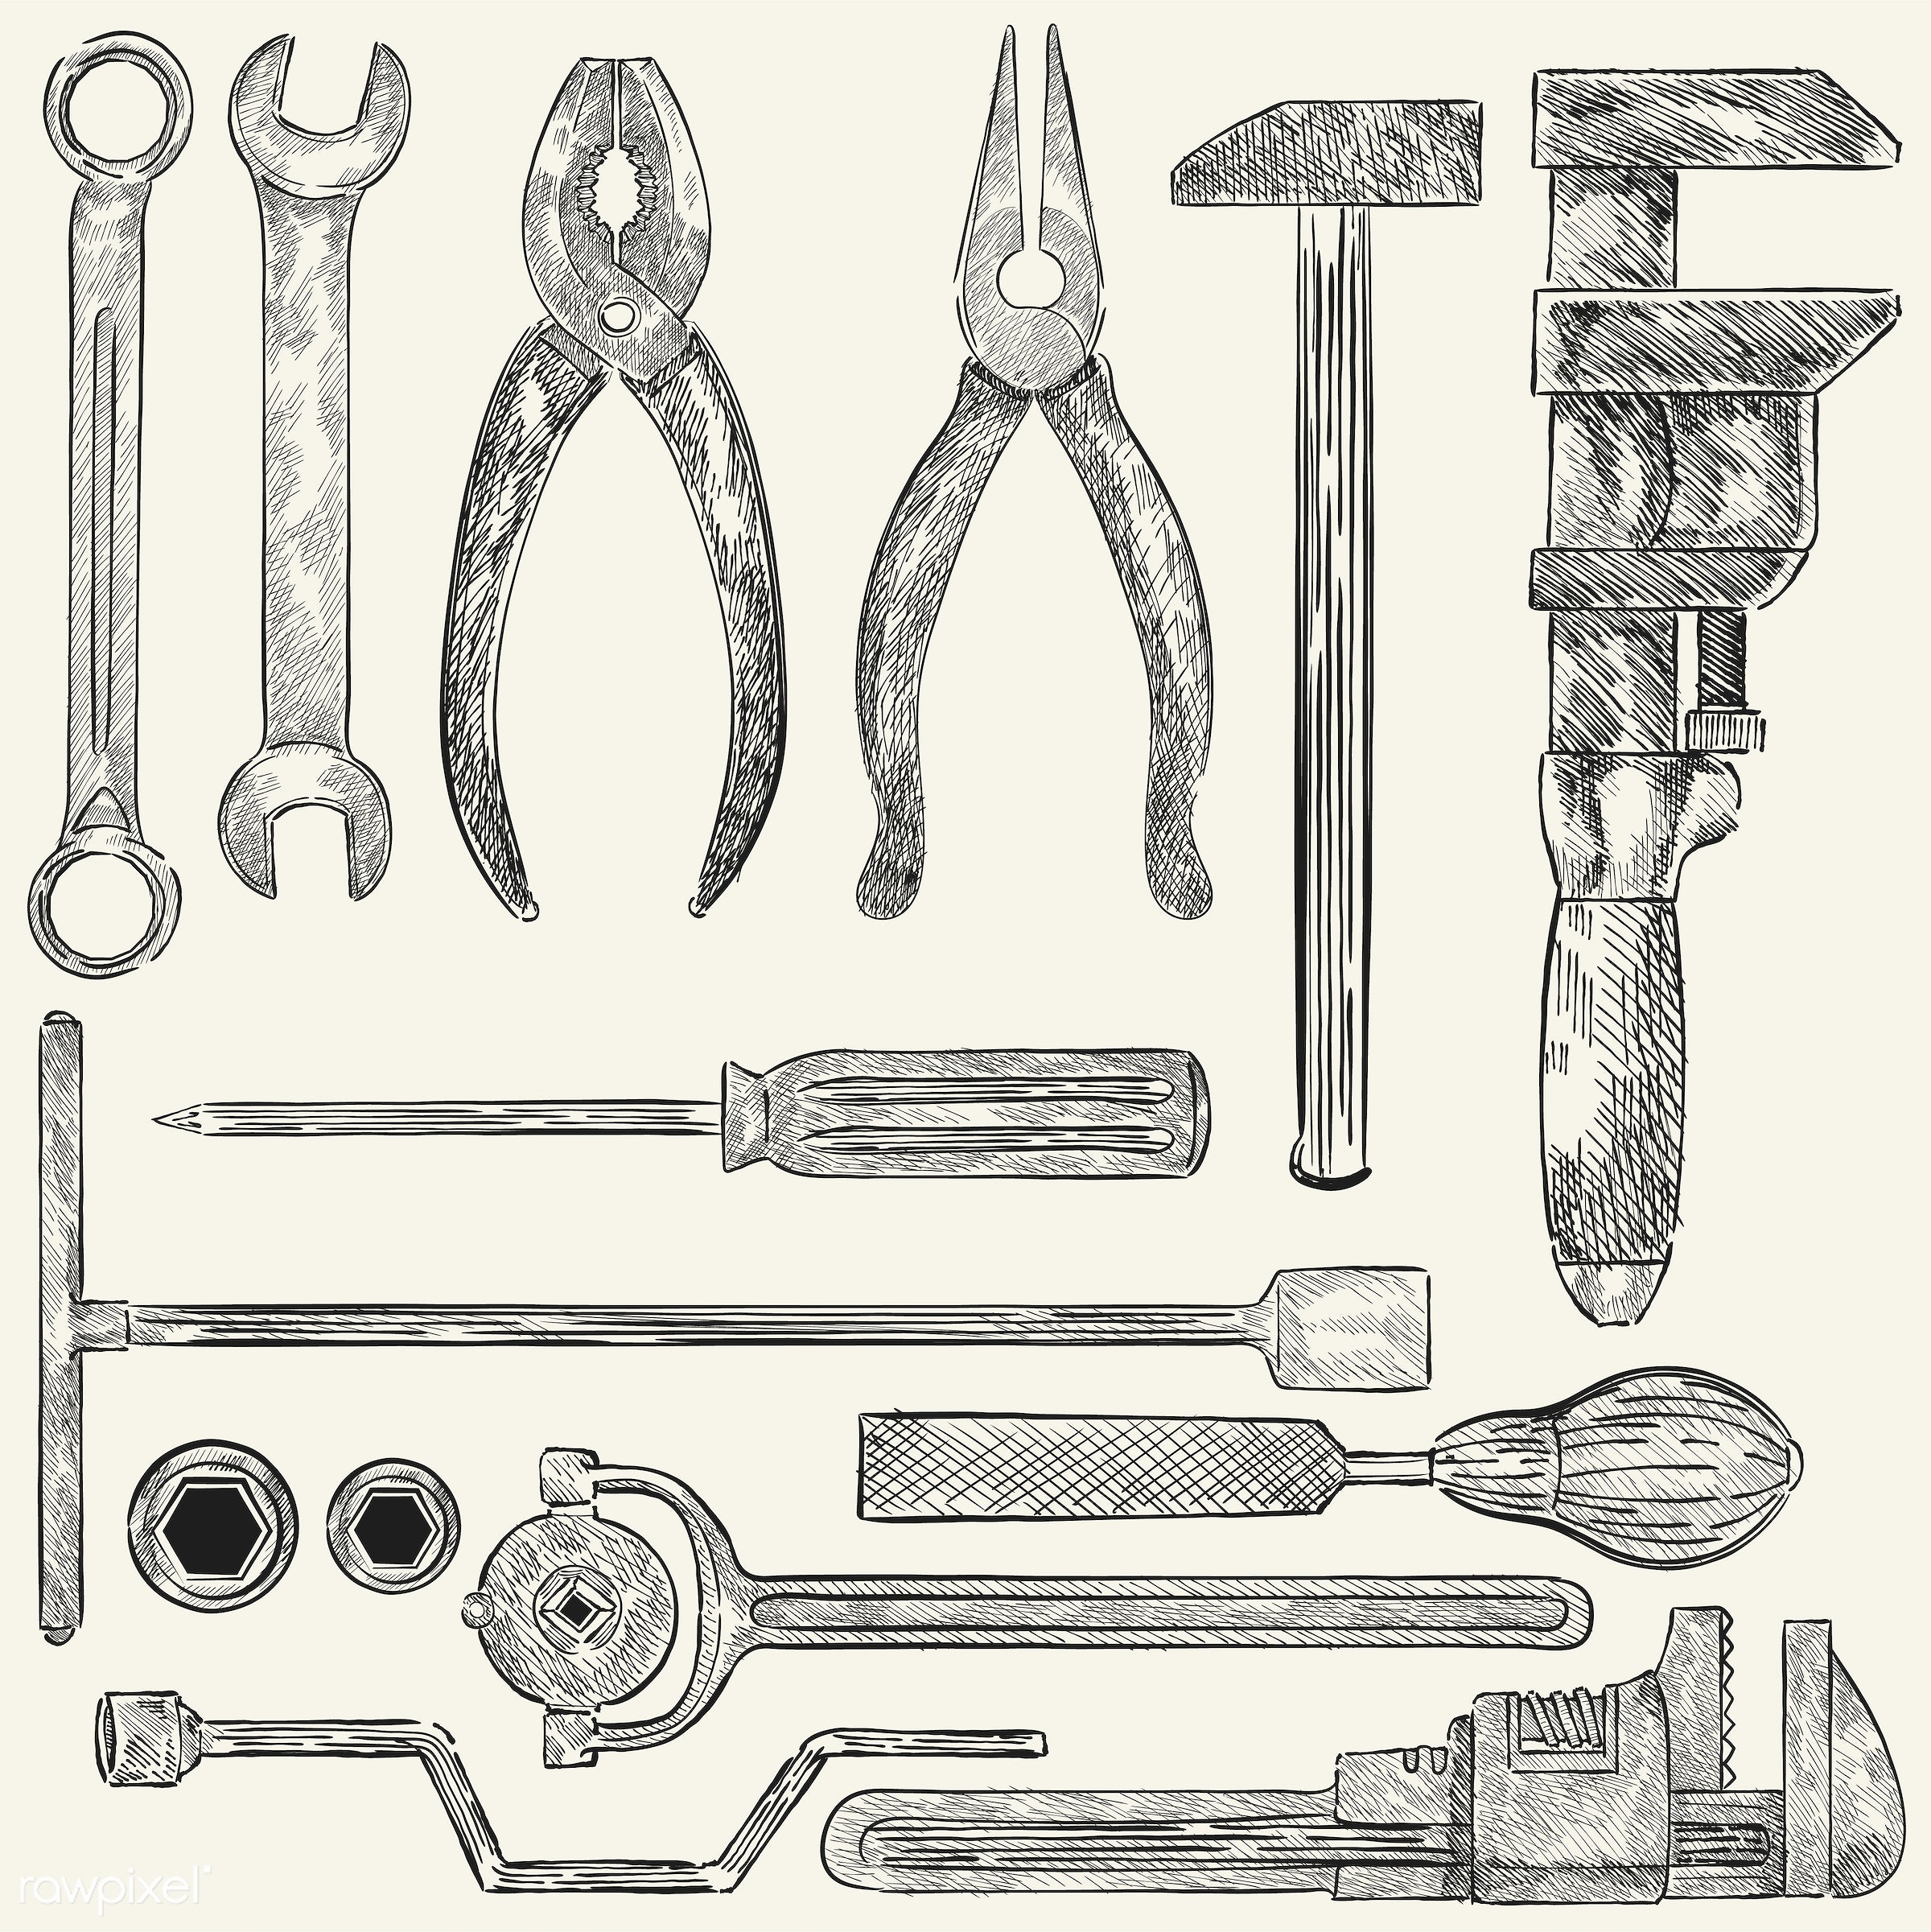 Illustration of a set of mechanic tools - sketch, vector, tool, antique, black, box wrench, chisel, collection, design,...